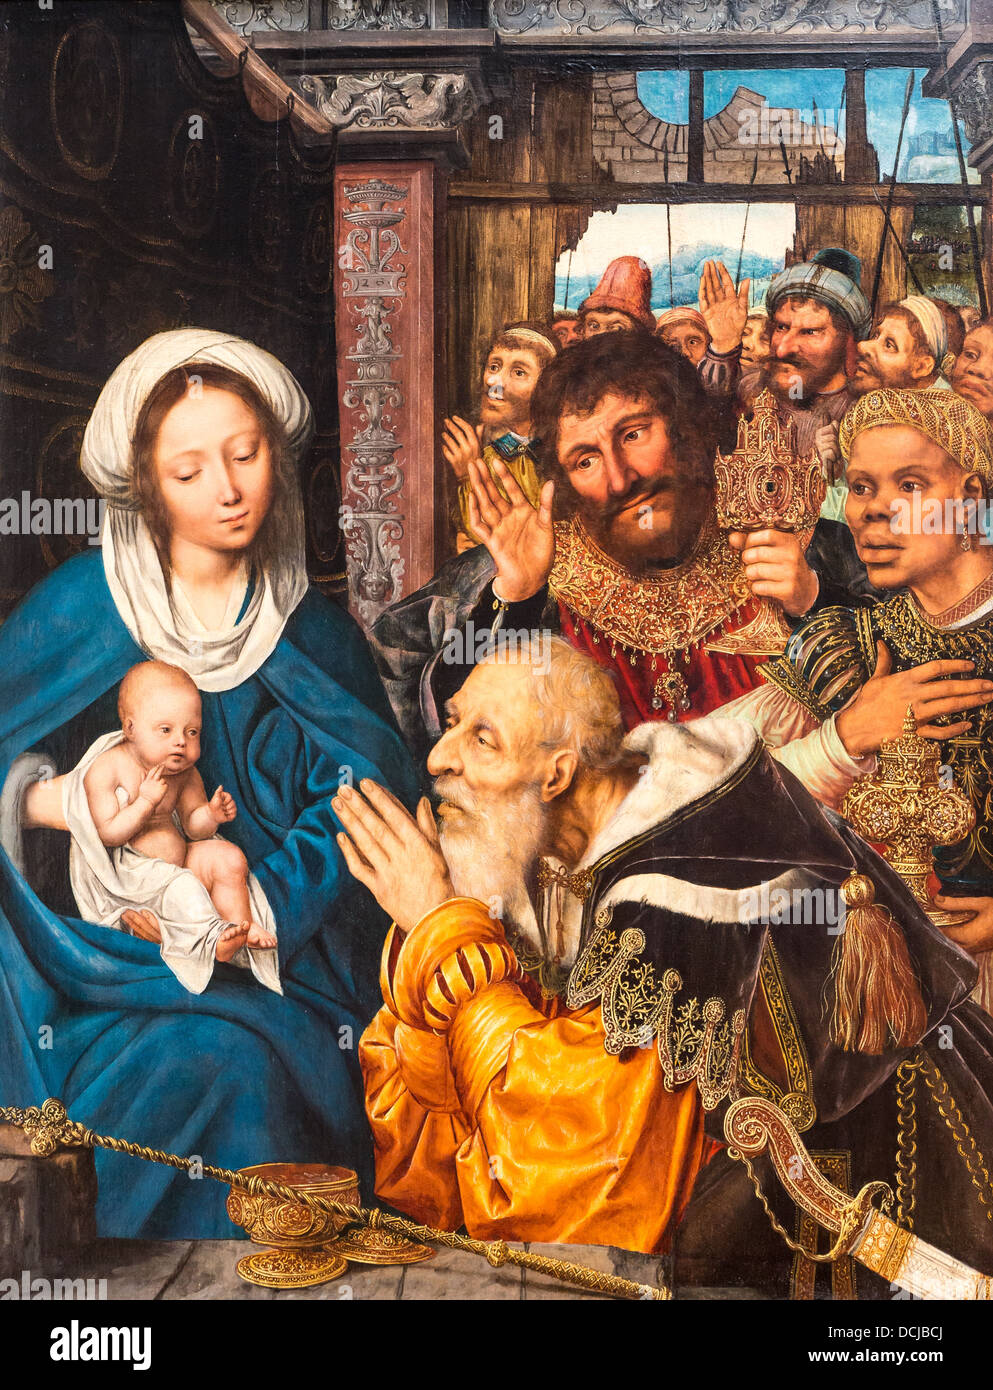 16th century  -  Adoration of the Magi - Quentin Metsys (1526) - Metropolitan Museum of Art - New York Oil on wood - Stock Image